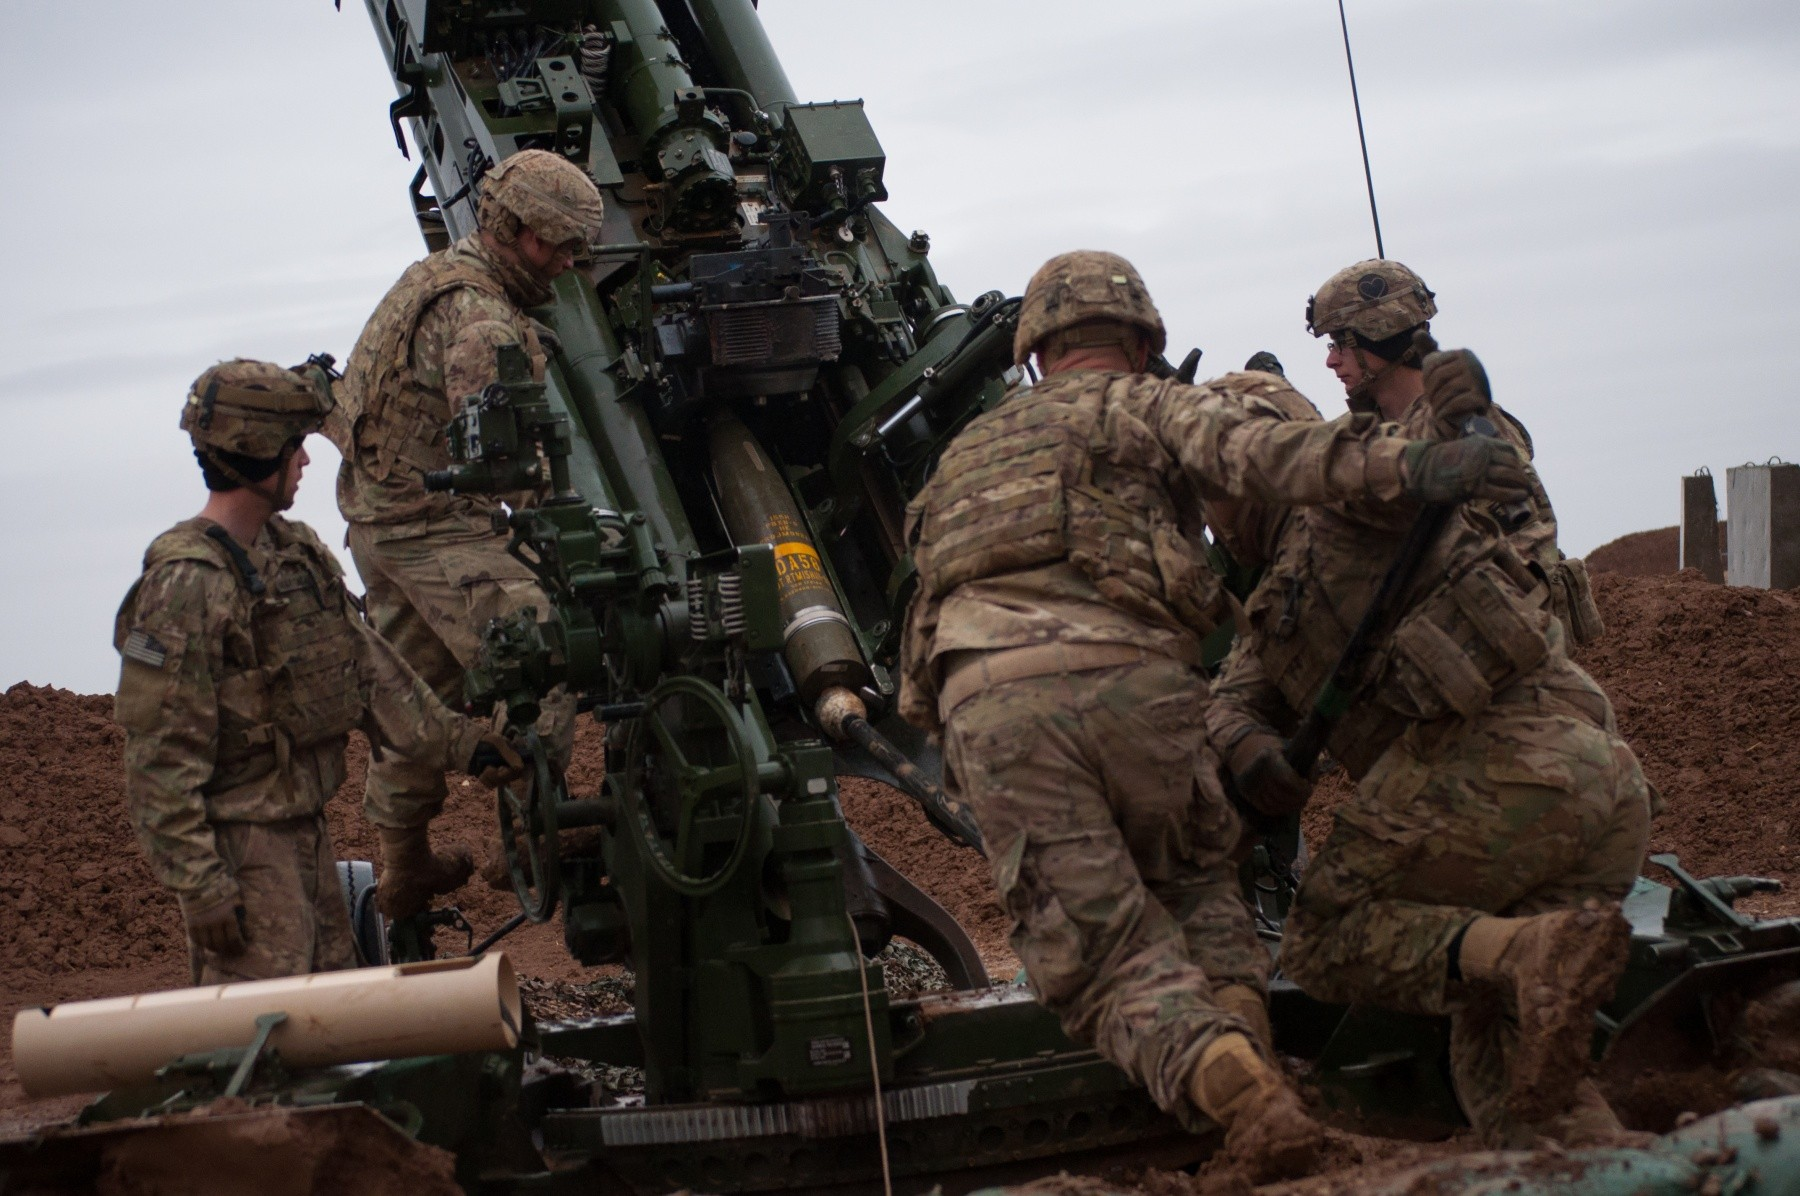 U.S Army Soldiers with Battery C, 1st Battalion, 320th Field Artillery Regiment, Task Force Strike, load a round into M777 artillery piece to support the Iraqi security forces during the Mosul counter offensive, Dec. 24, 2016, in northern Iraq. Battery C is supporting the ISF with indirect fires in their fight against ISIL. (Photo Credit: 1st Lt. Daniel Johnson)